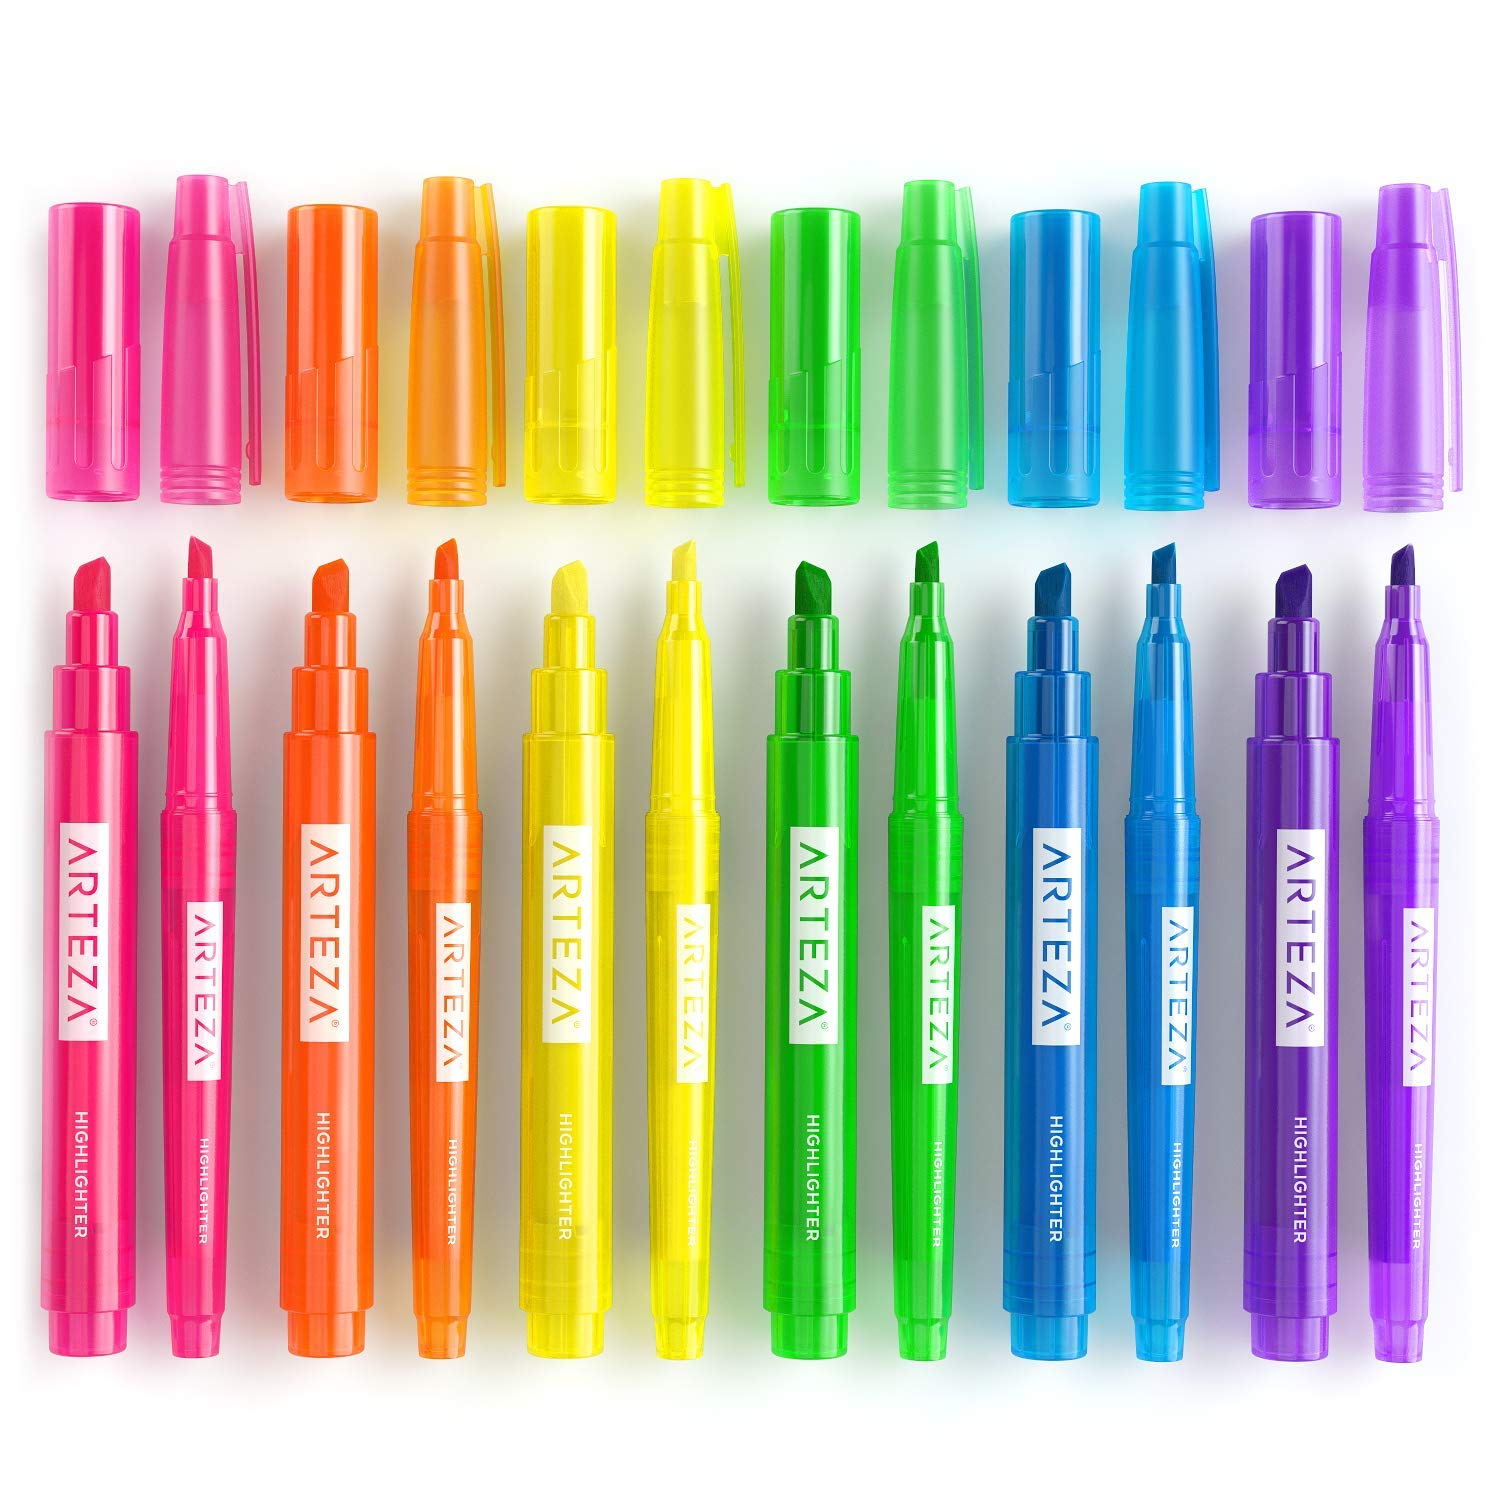 Arteza Highlighters Set of 60, Bulk Pack of Colored Markers, Wide and Narrow Chisel Tips, 6 Assorted Neon Colors, for Adults & Kids by ARTEZA (Image #3)